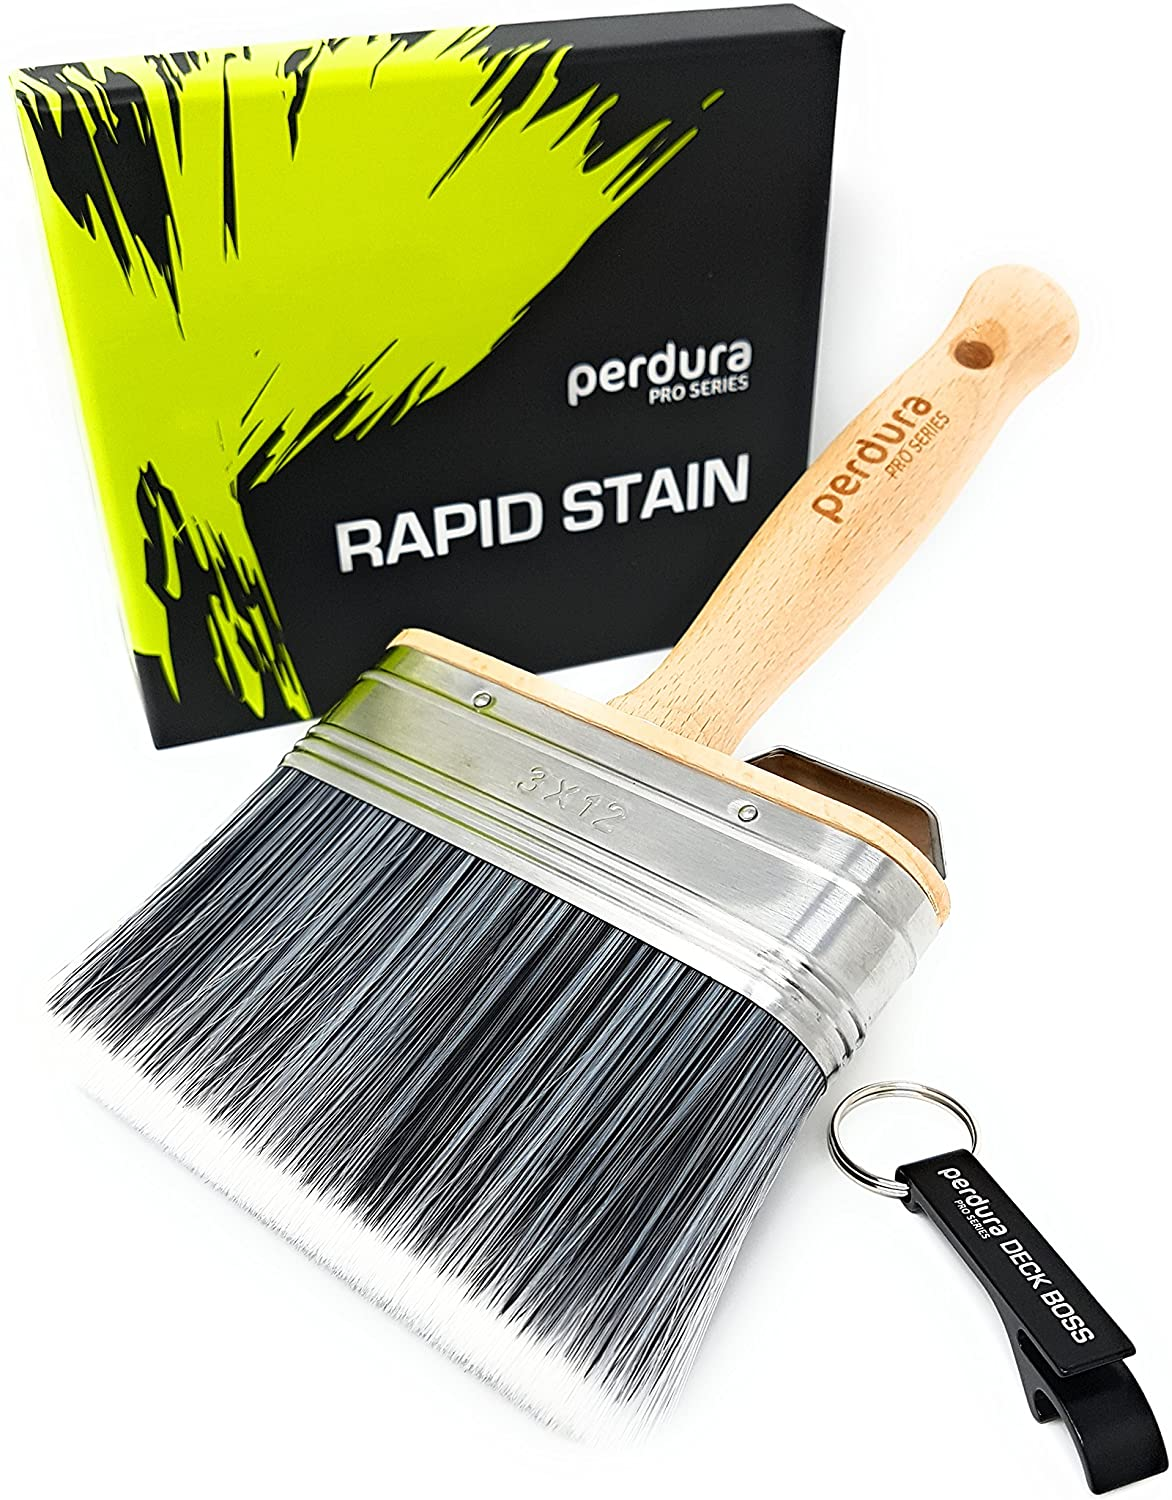 Perdura Rapid Stain Deck Stain Brush